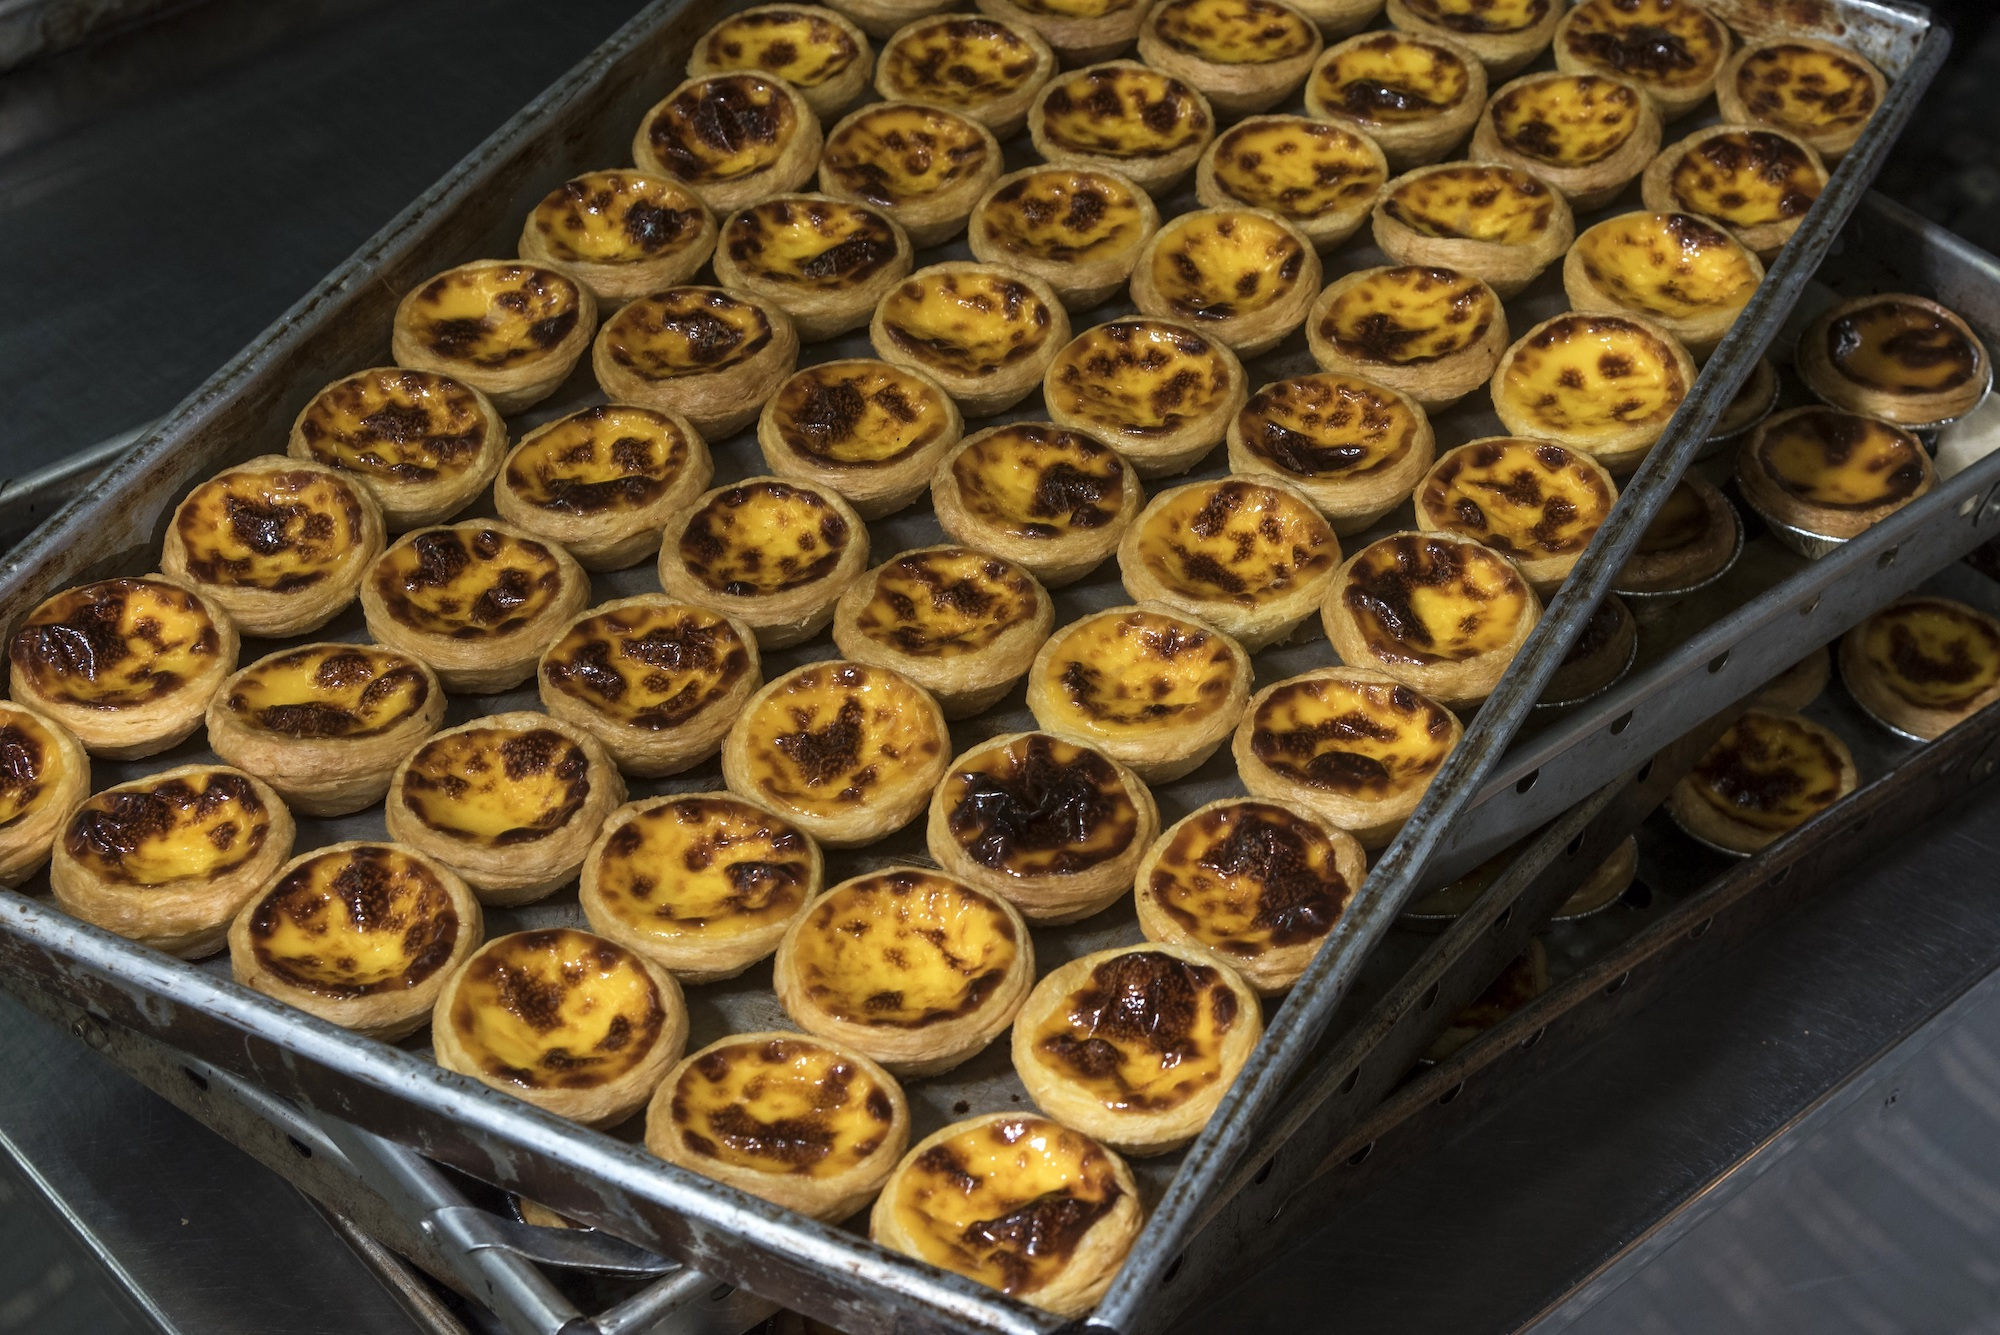 Eggtarts from Lord Stow's Bakery